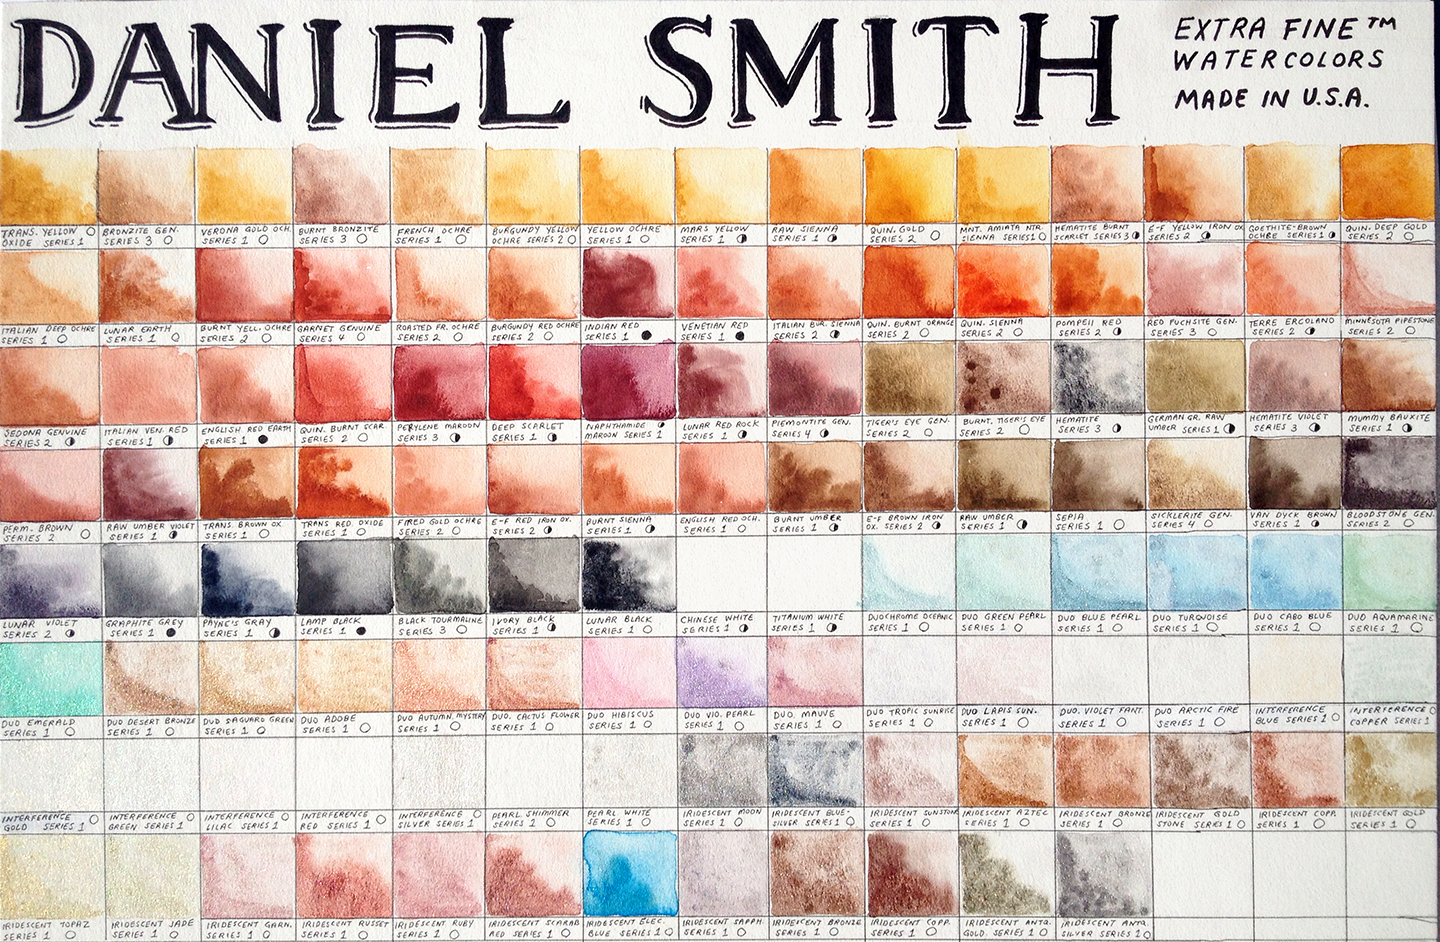 Daniel smith available in 15ml tubes nvjuhfo Image collections